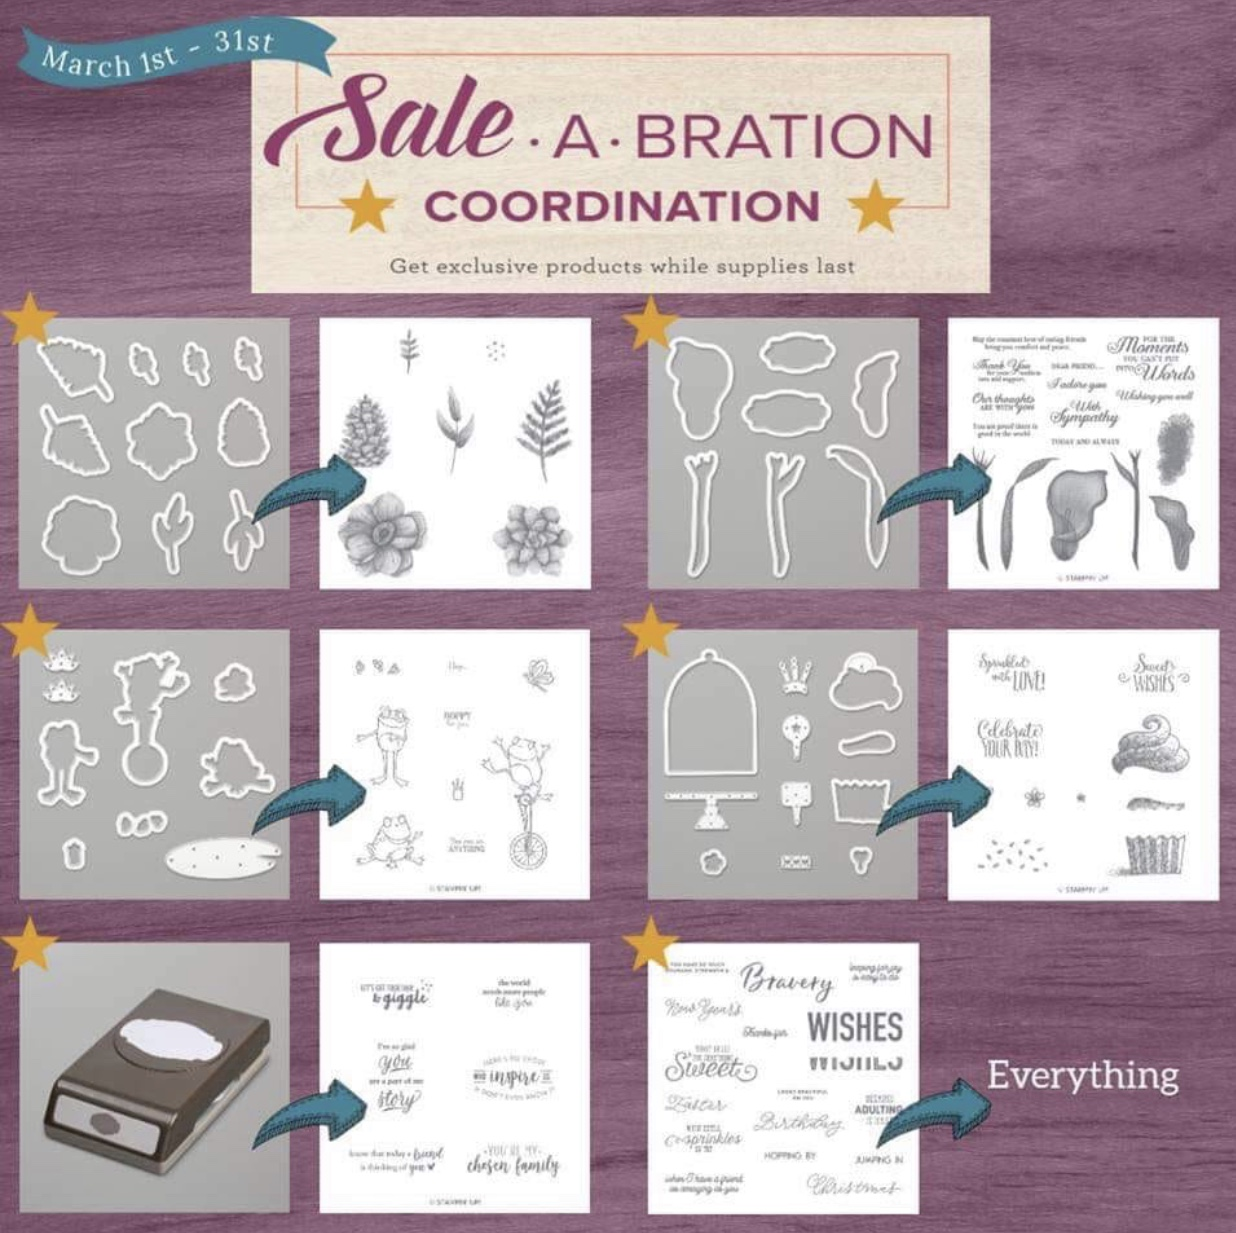 New Sale-abration items just added!!